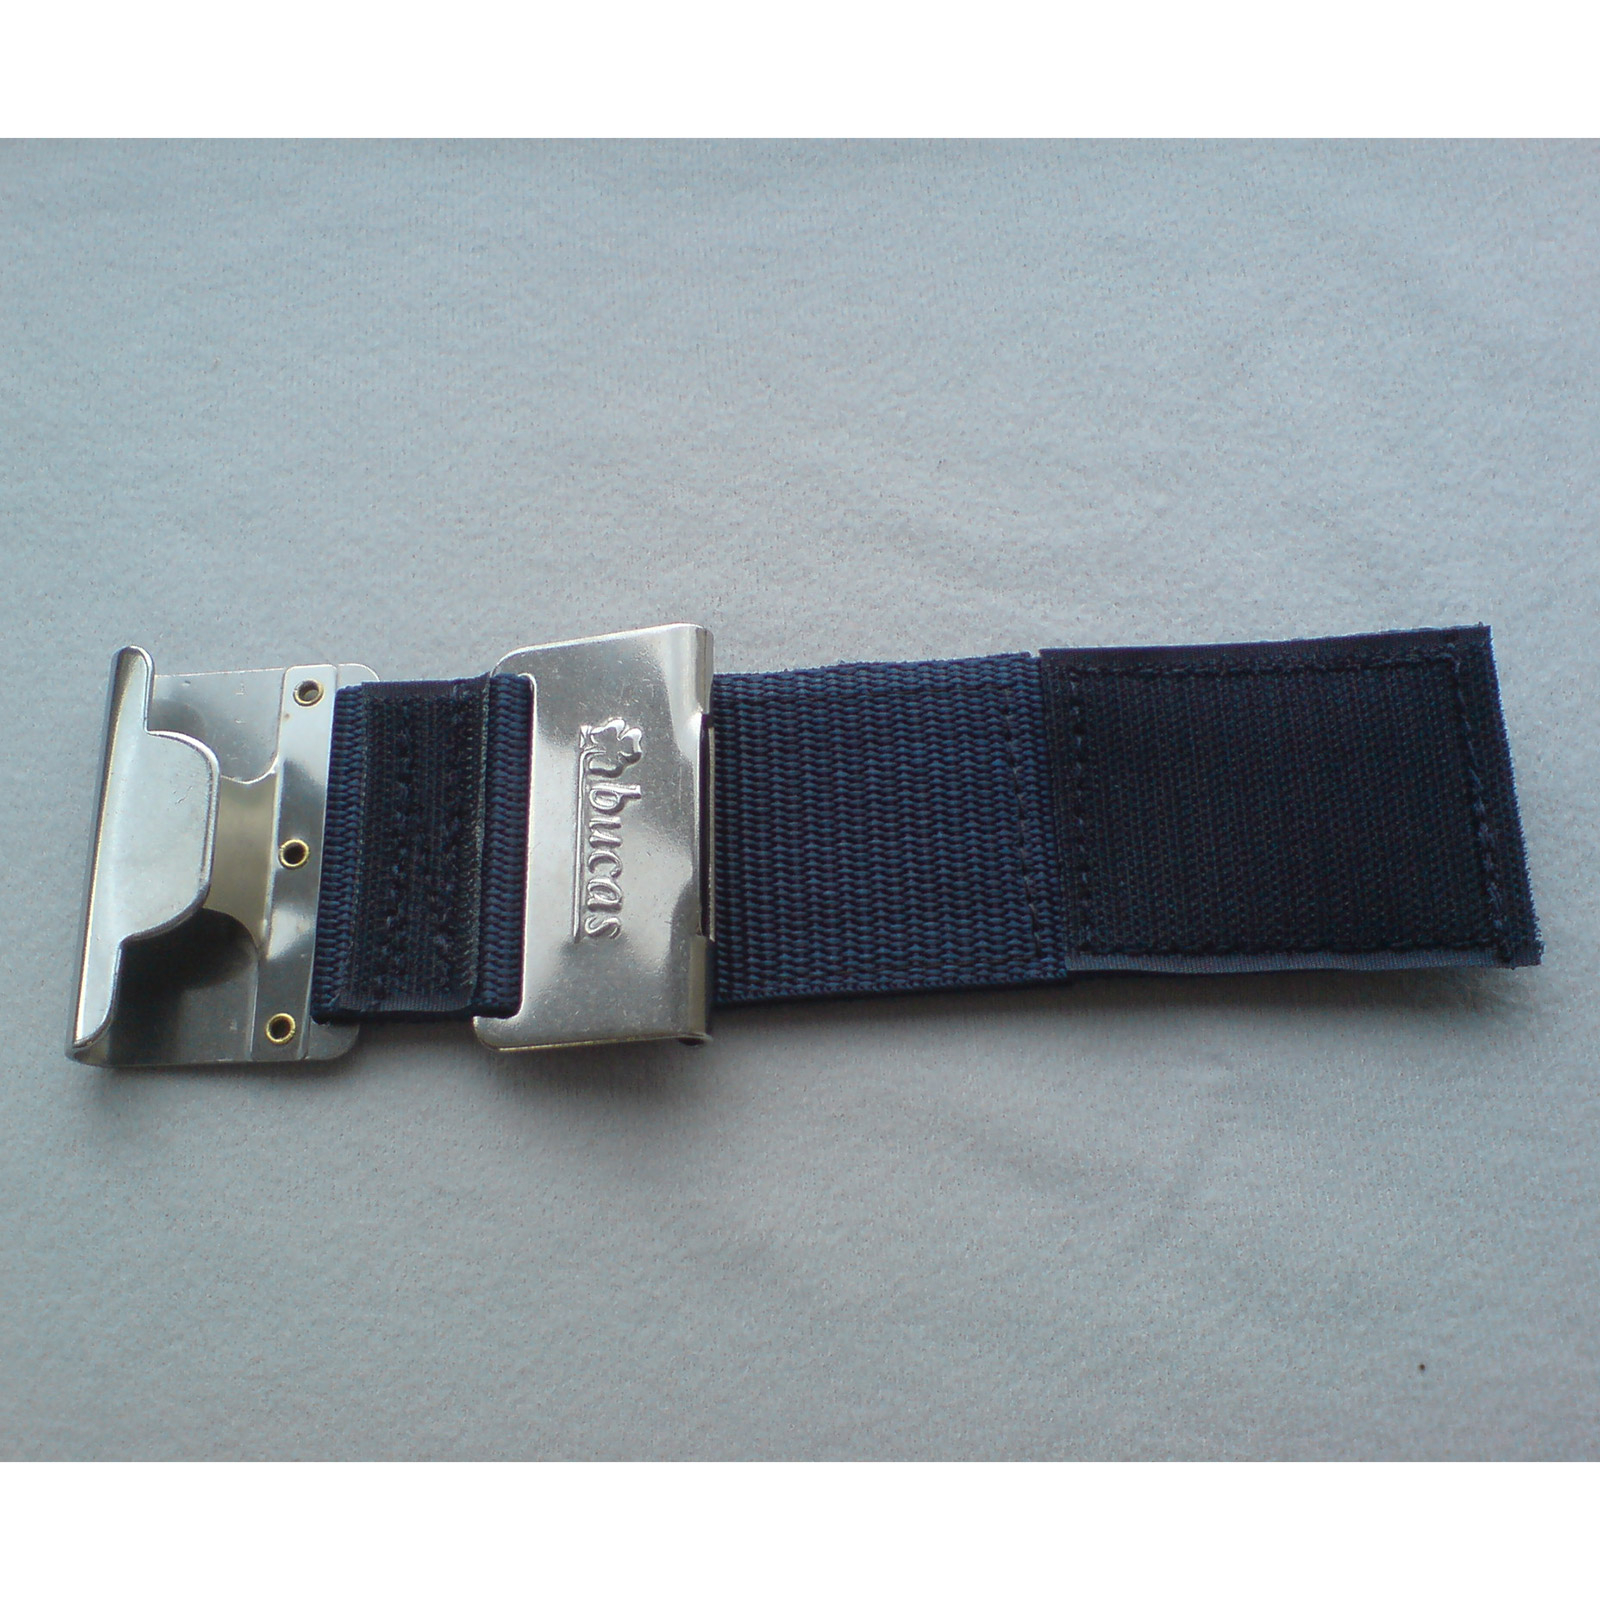 Bucas Front Extender Buckle For Click N